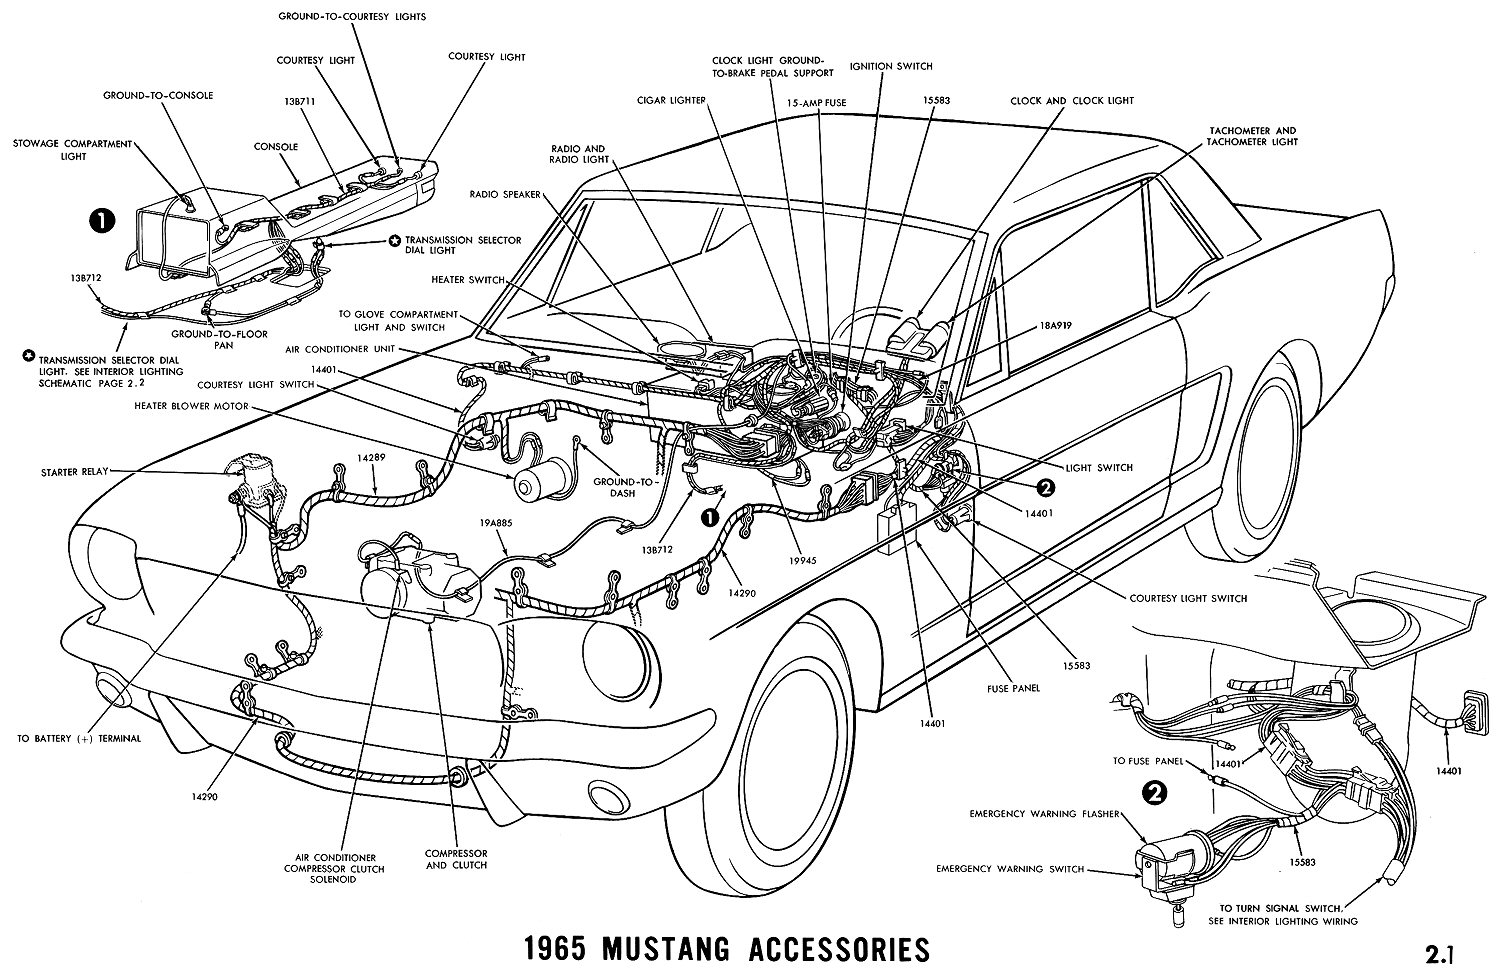 65 mustang accesories 1965 mustang accesories diagram 03 mustang fuse box location at reclaimingppi.co